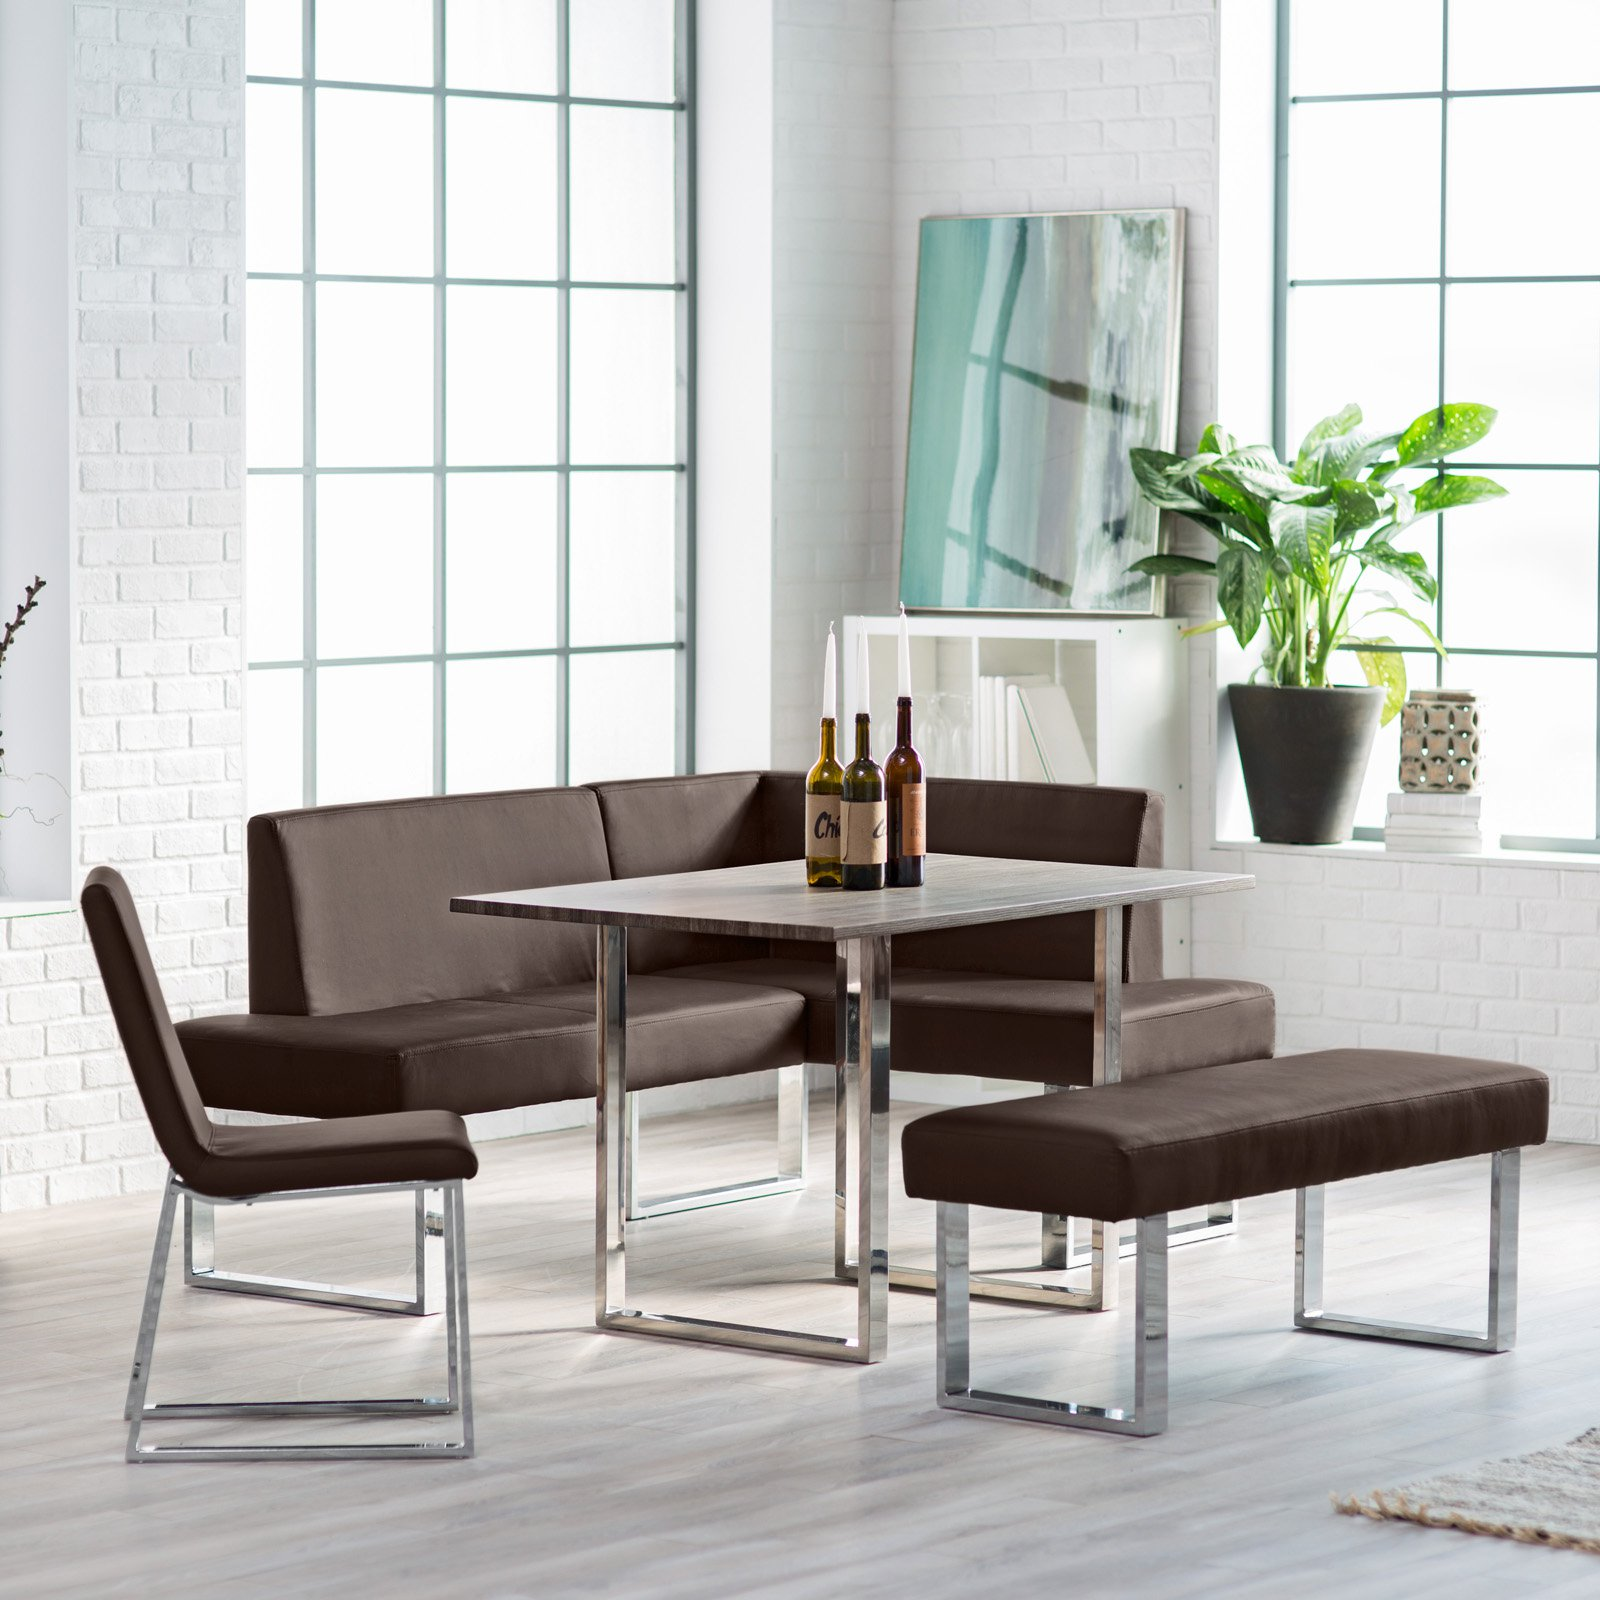 dining room cool furniture design with cozy nook set kitchen corner breakfast tables and chairs contemporary table sets accent for small entryway marble designs metal side legs